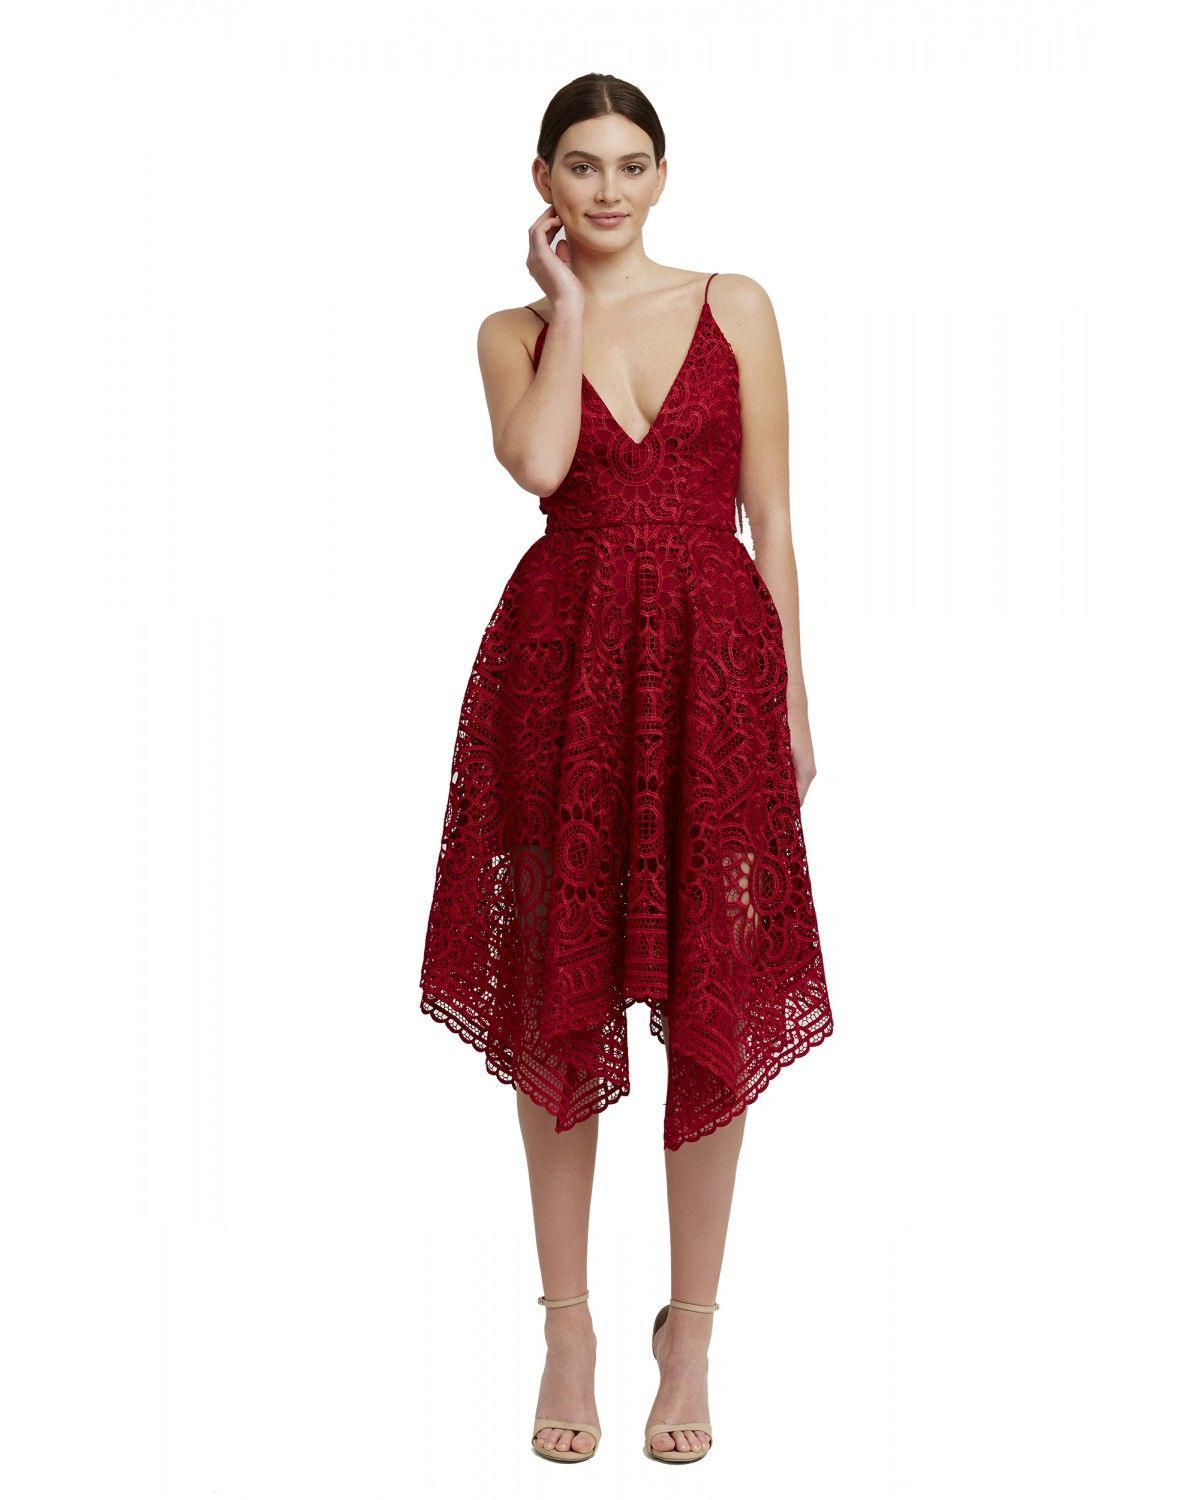 Floral Lace Ball Dress